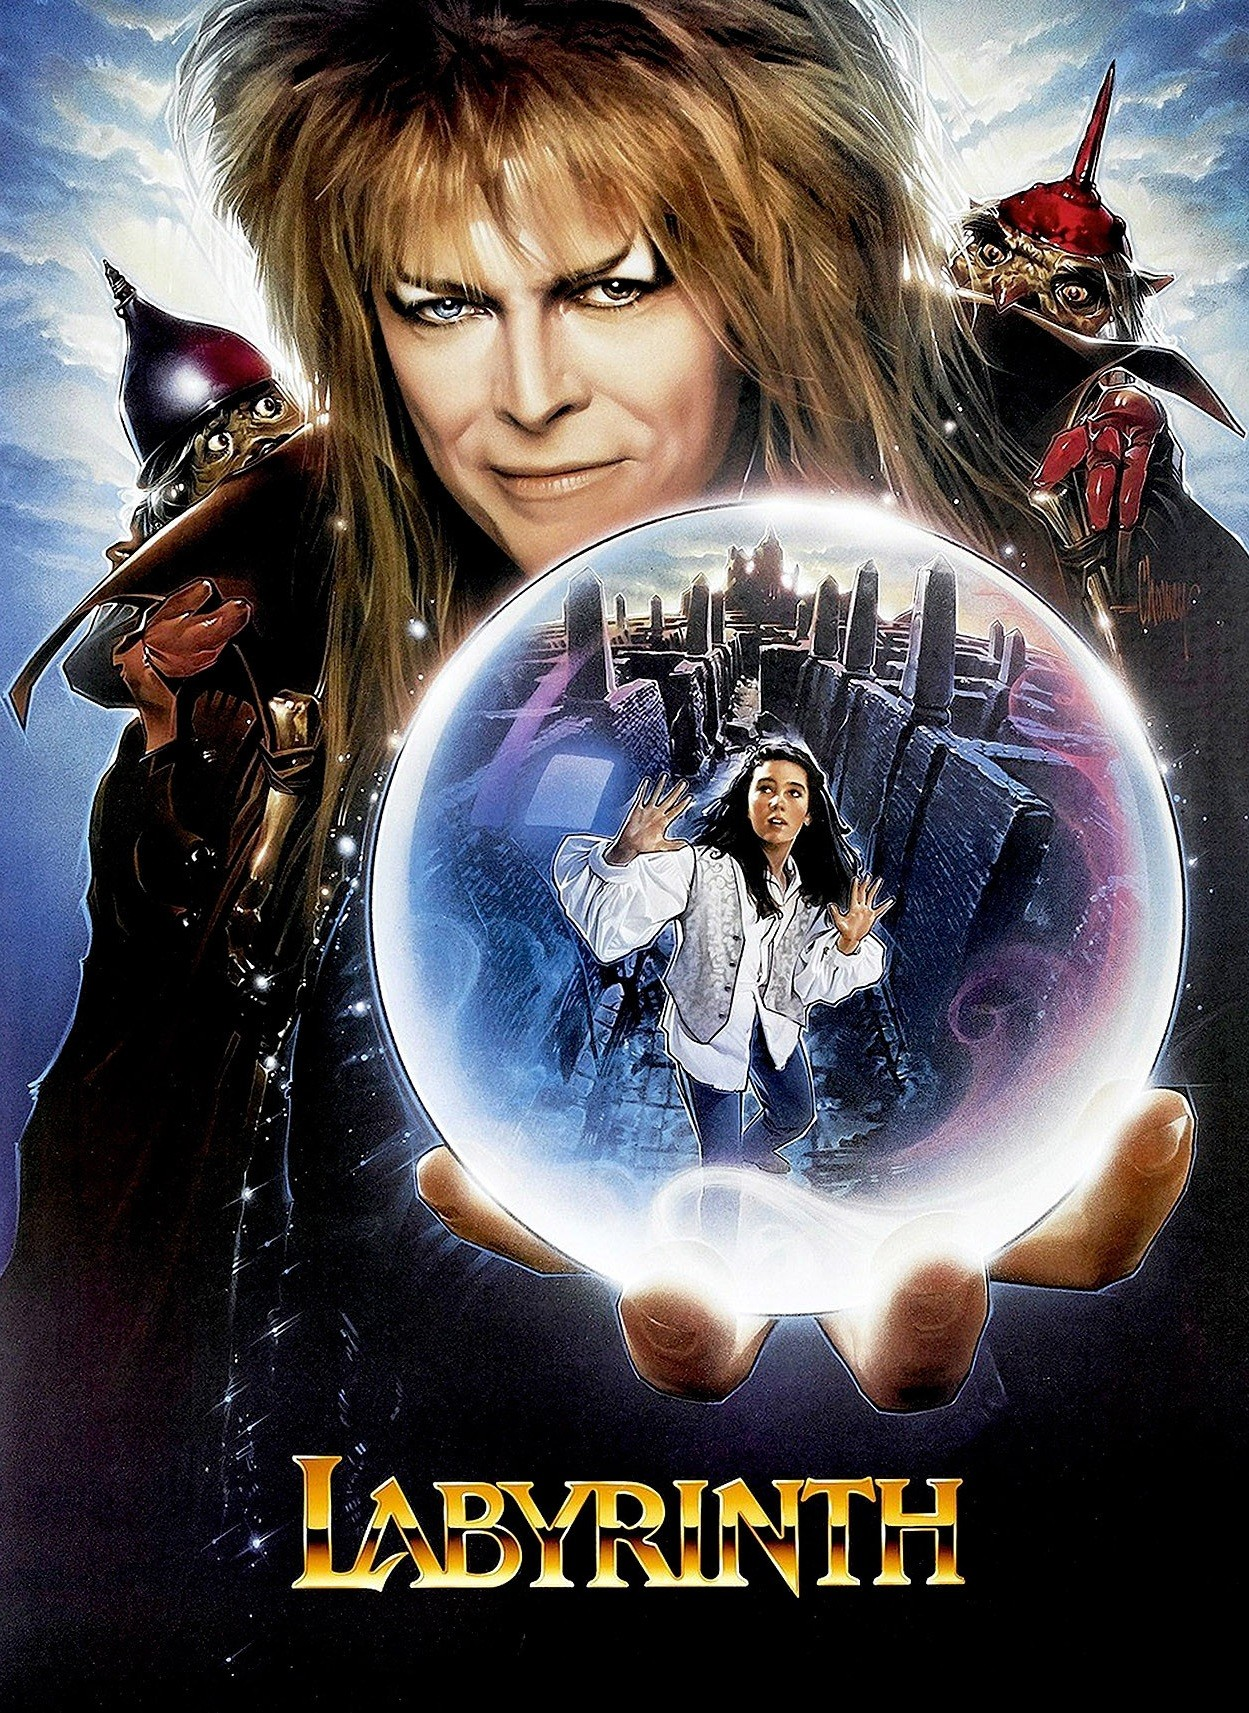 labyrinth-poster-image-credit-manilovefilms.com_